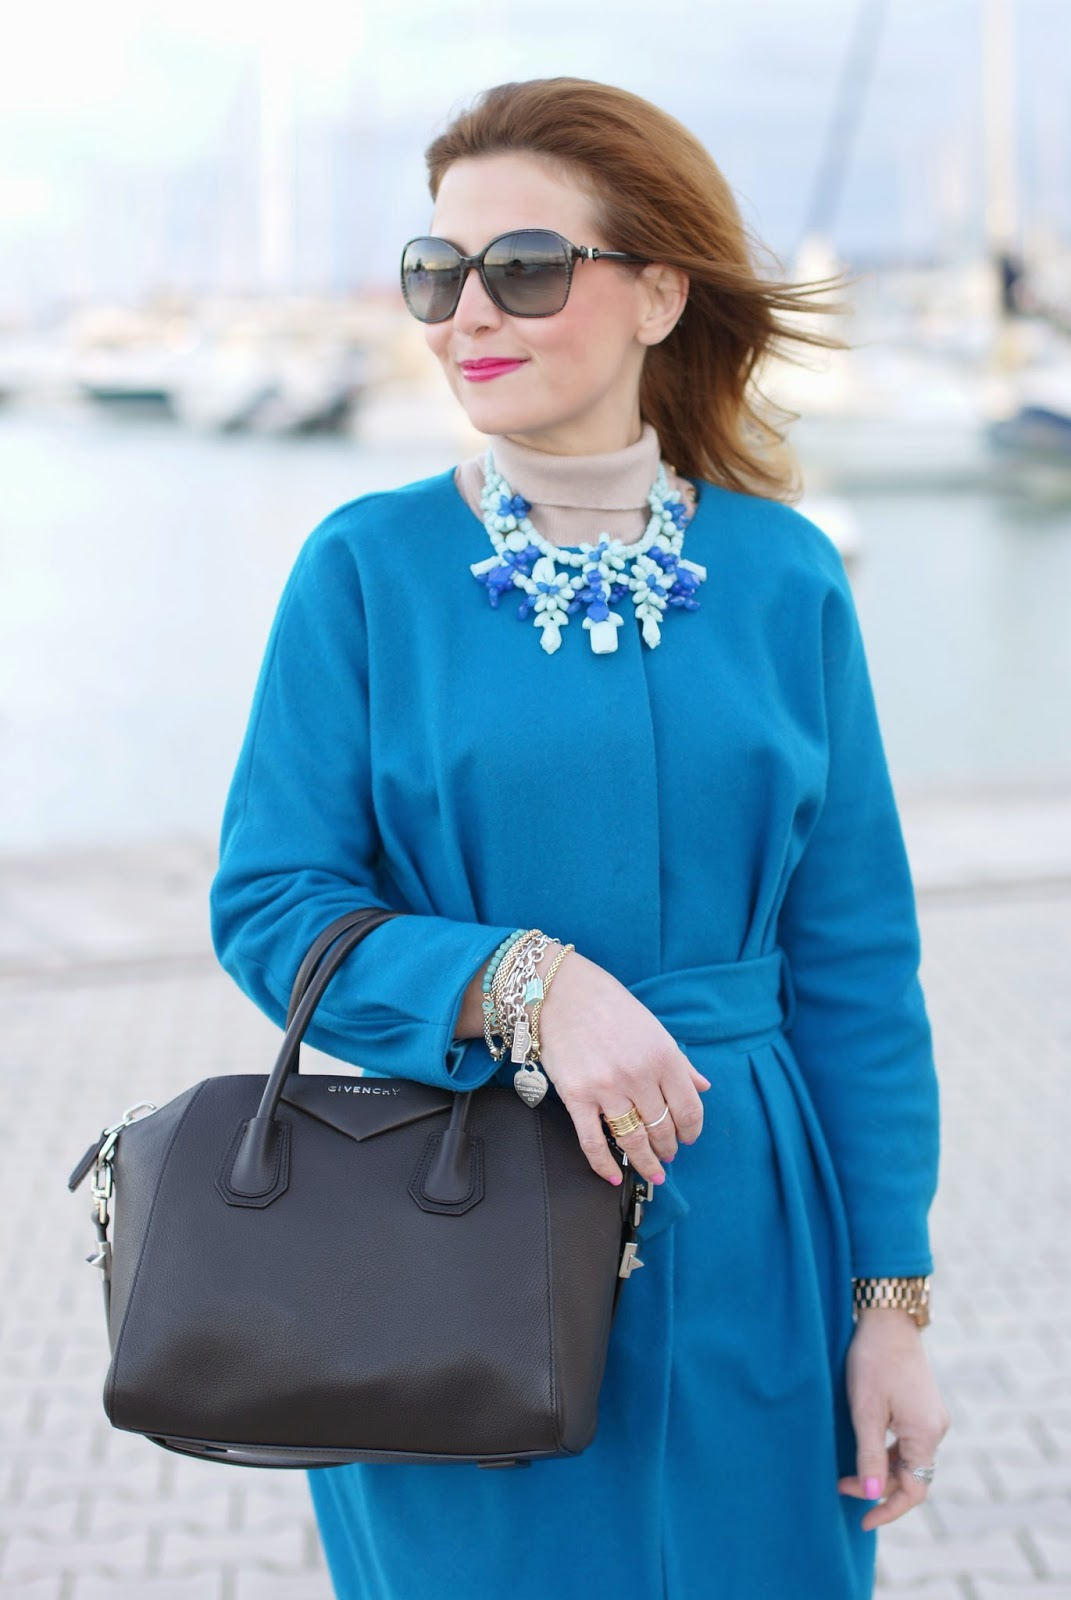 Givenchy Antigona bag, MAC lickable lipstick, Zara blue statement necklace, Sapphire blue coat, Fashion and Cookies, fashion blogger